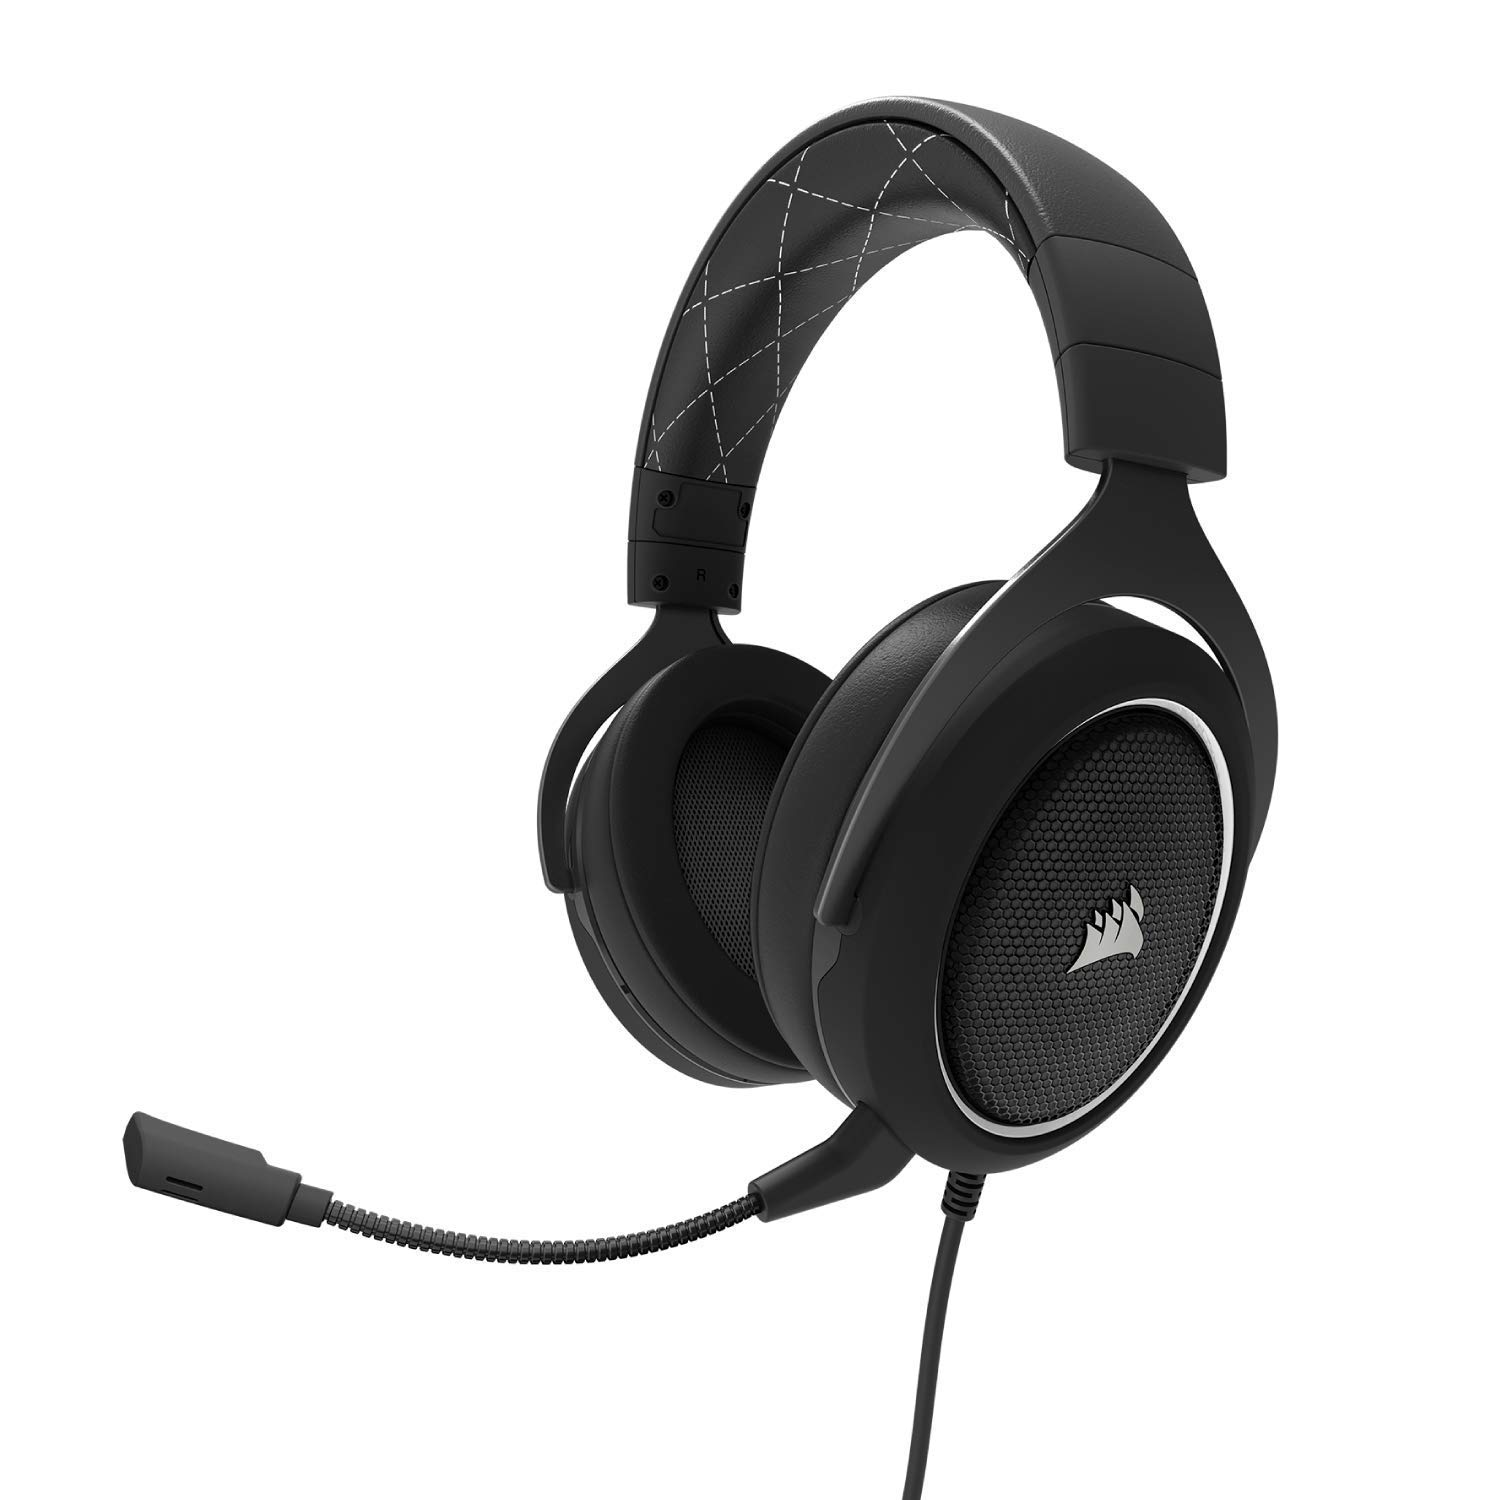 CORSAIR HS60 - 7.1 Virtual Surround Sound PC Gaming Headset w/USB DAC - Discord Certified Headphones - Compatible with Xbox One, PS4, and Nintendo Switch - White (Renewed) by Corsair